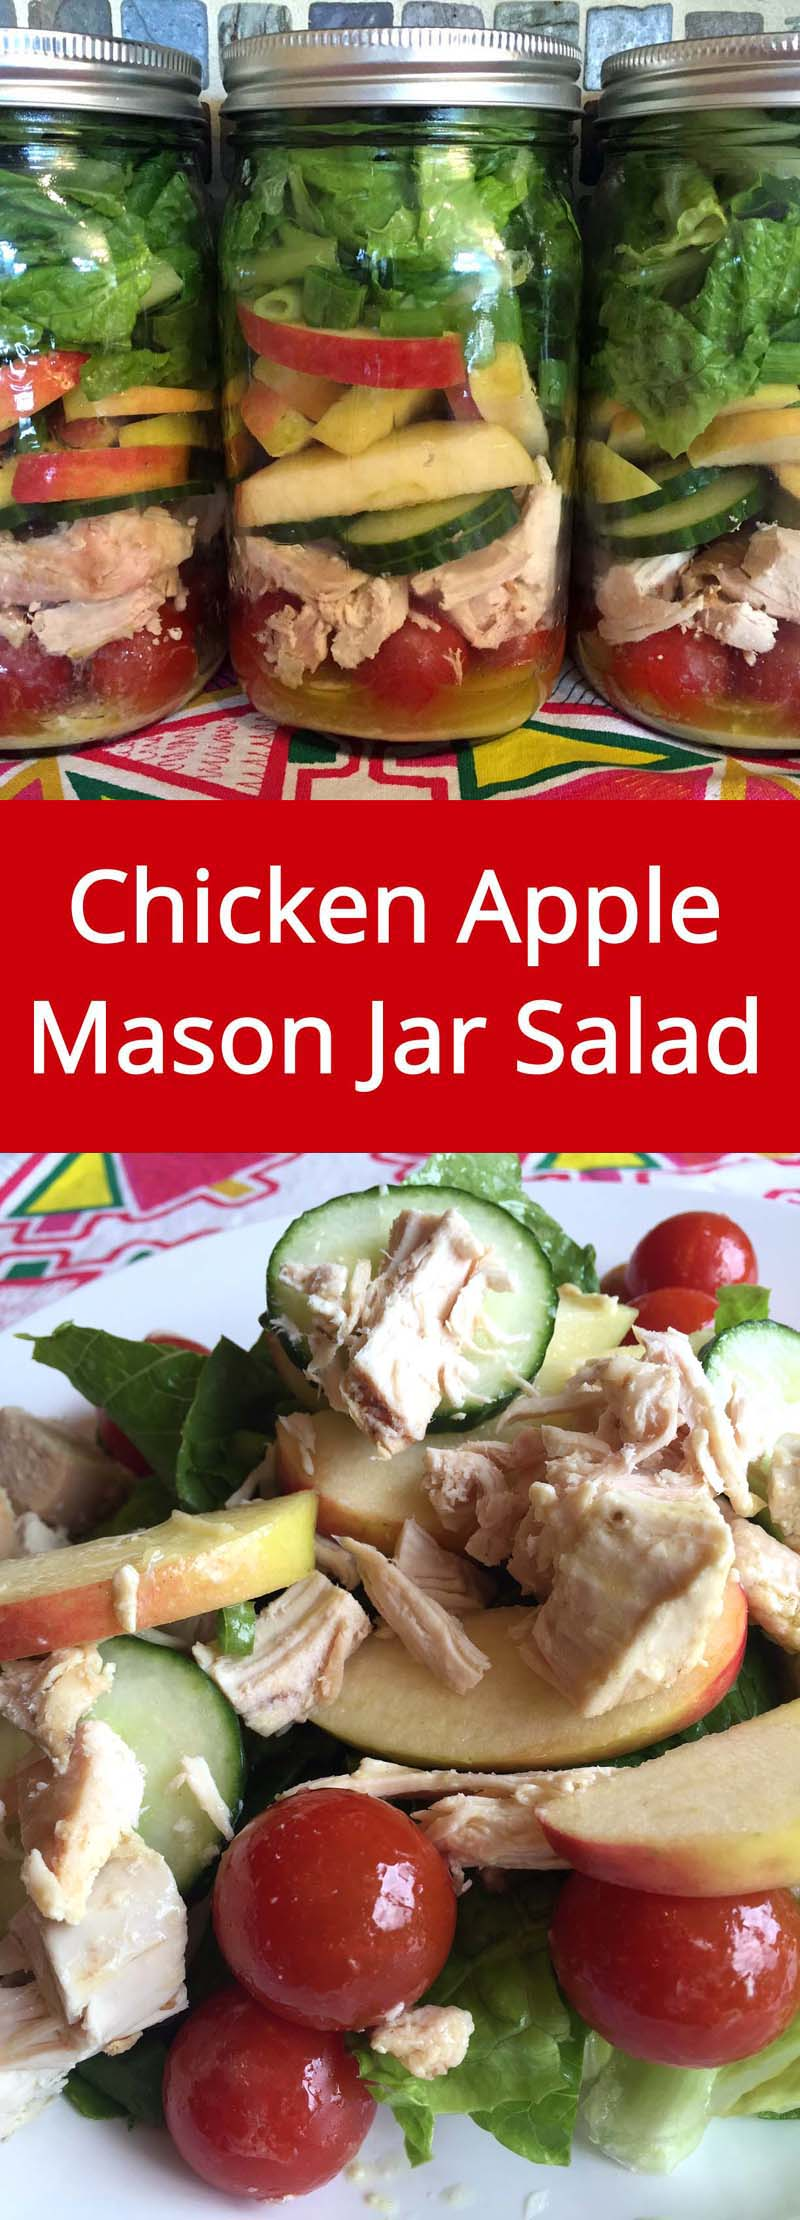 Chicken Apple Mason Jar Salad - make a week's worth of healthy lunches in 20 minutes or less!   MelanieCooks.com